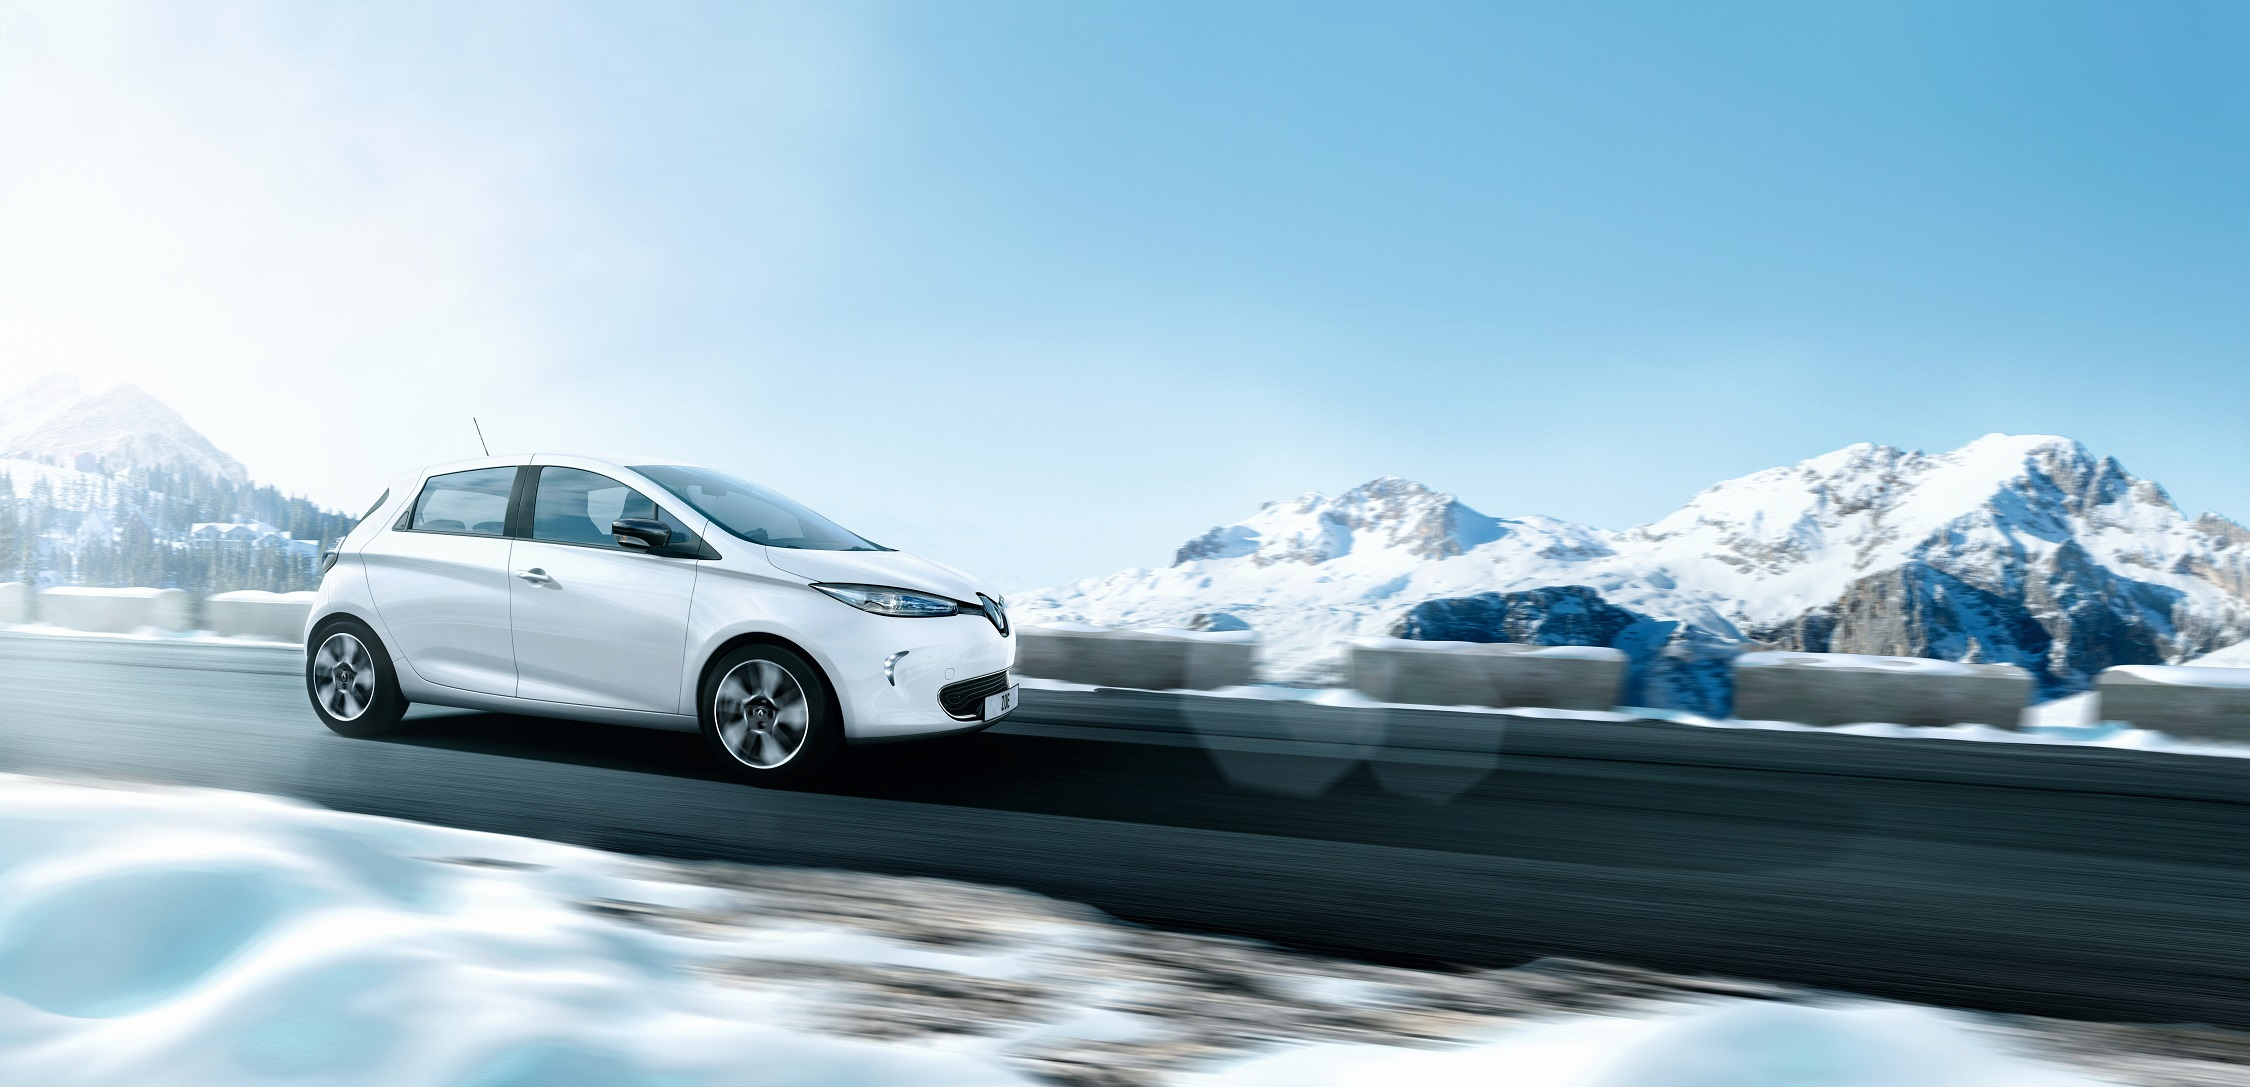 Renault Zoe Malaysia Launched But Are We Ready For Ev Adoption Tricky 12v Battery Charger Circuit D Mohankumar Chargers